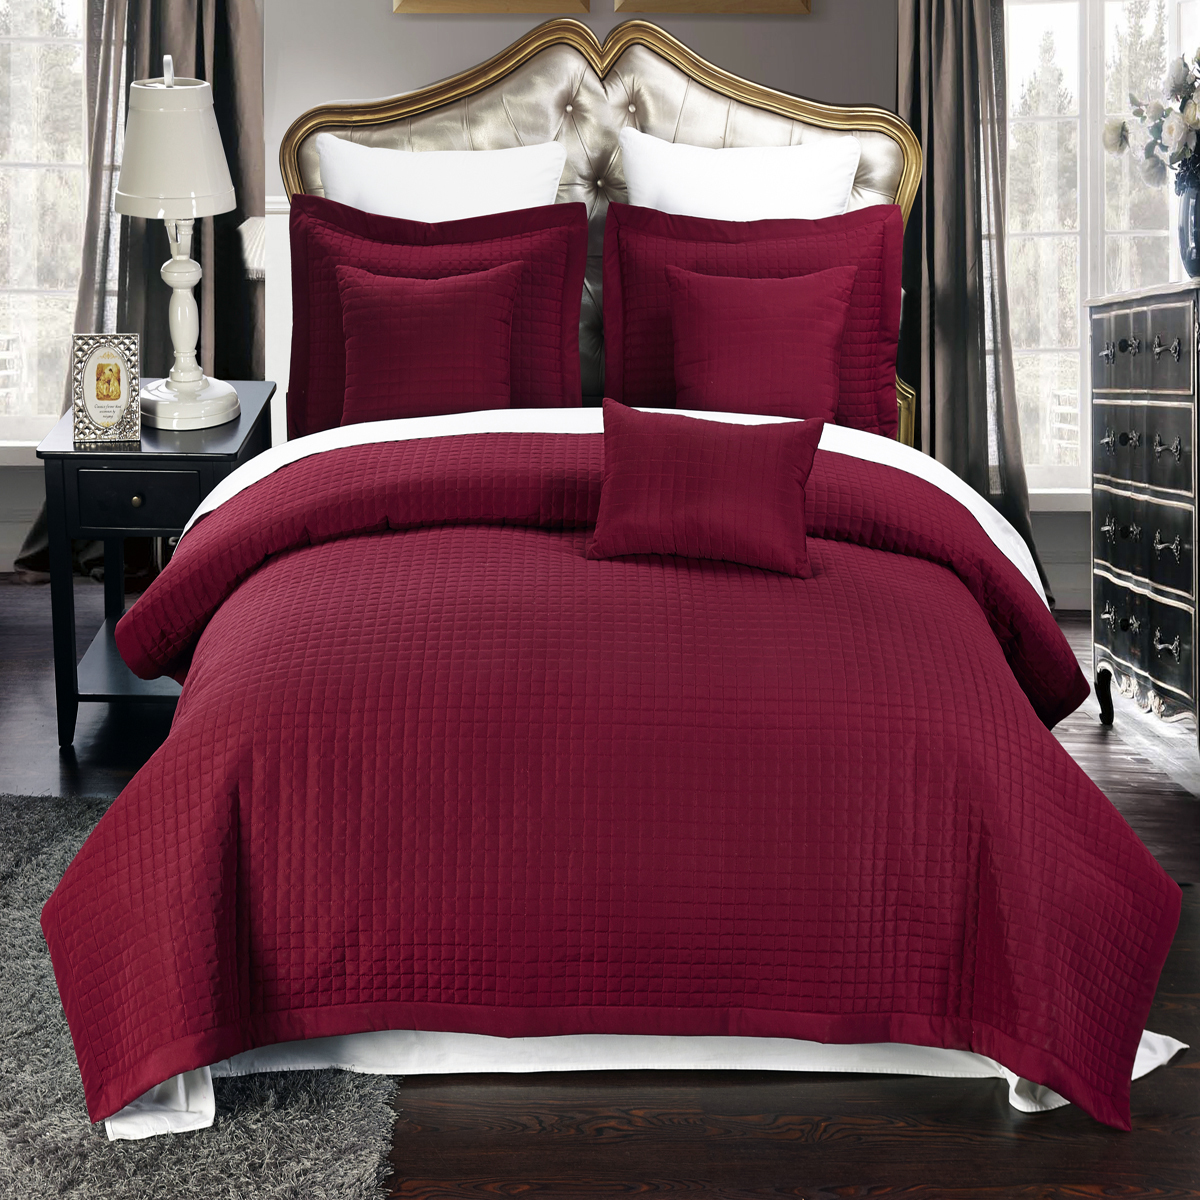 Luxury Soft Checkered Diamond Stitched 3 Piece Coverlet Set Wrinkle-Free Reversible All Season Mini Bedspread Set -Black-Full/Queen